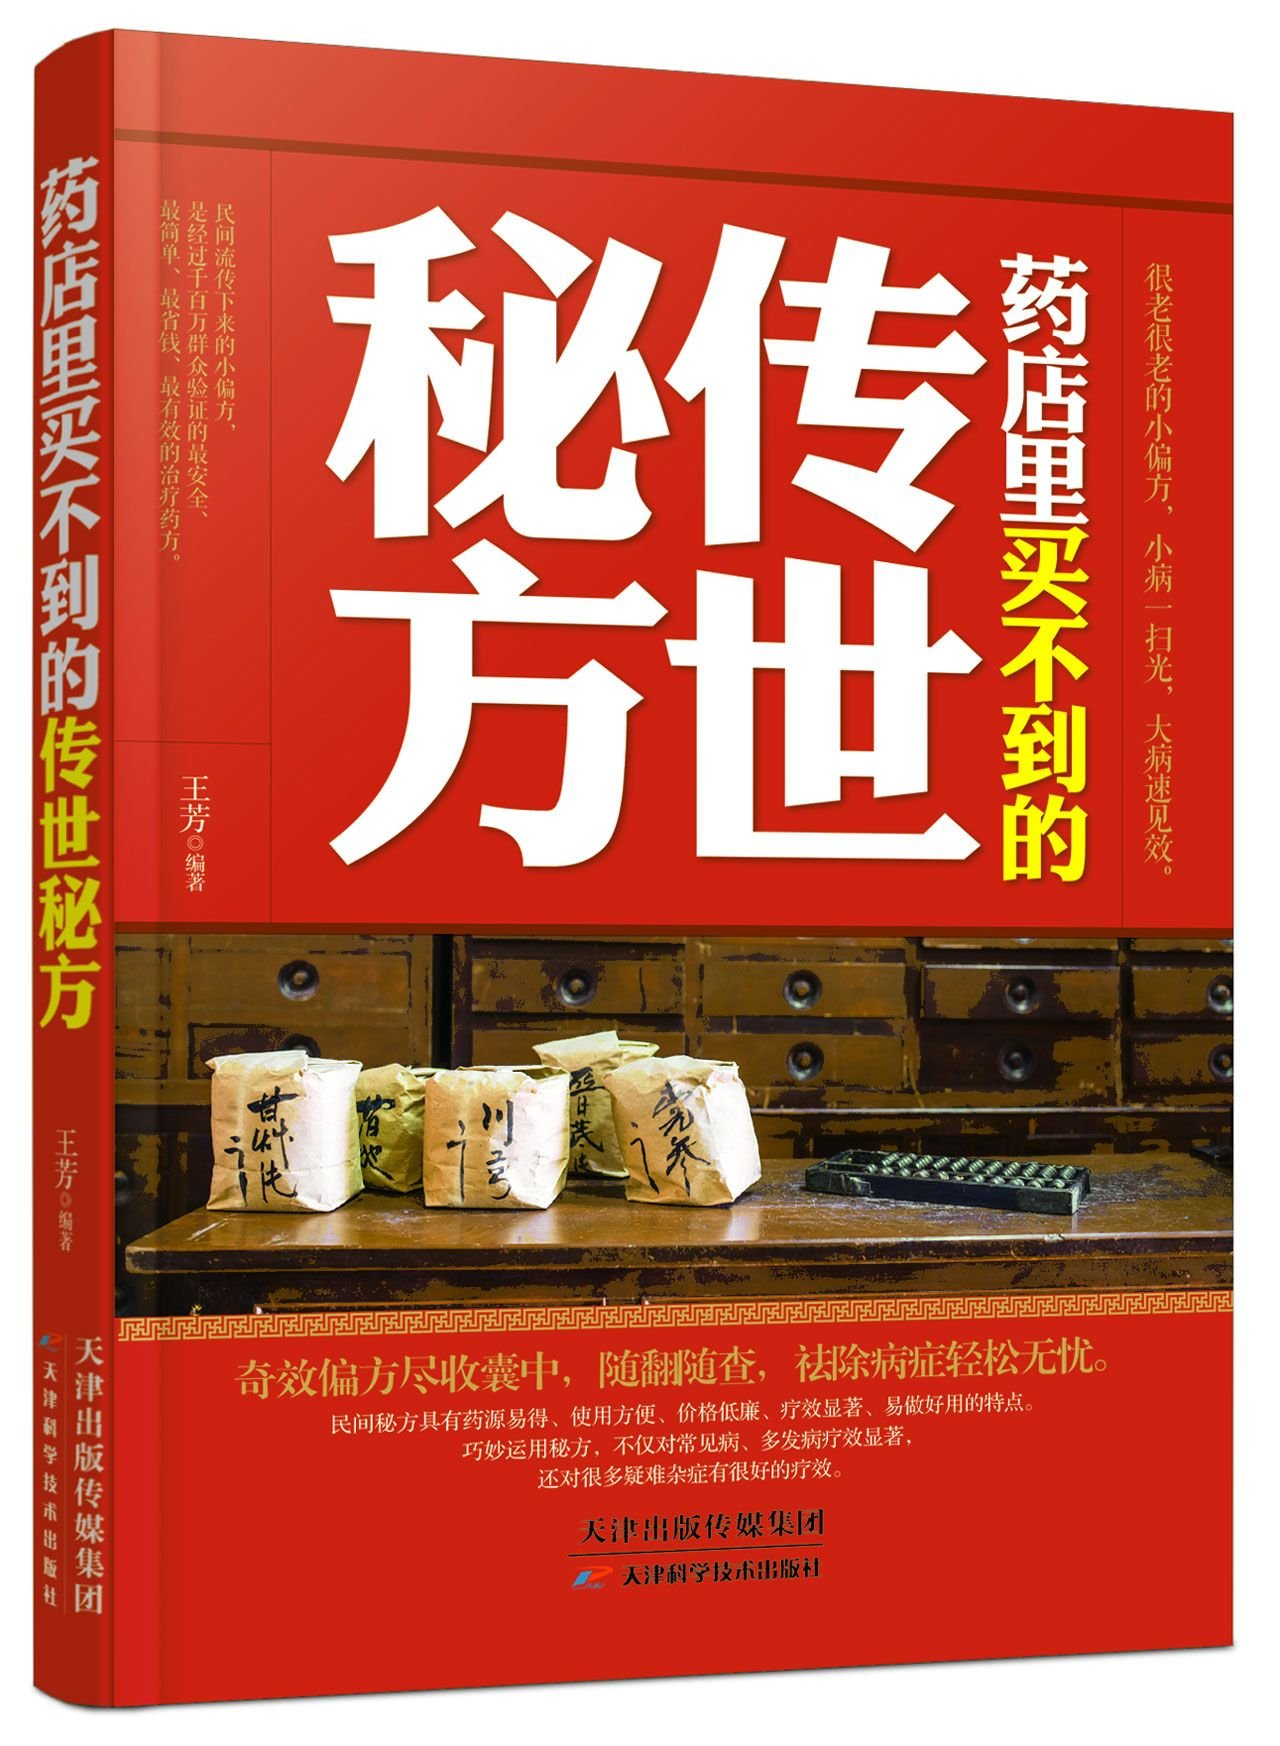 Download The Secret Prescription You Cannot Buy in Drugstore (Chinese Edition) PDF